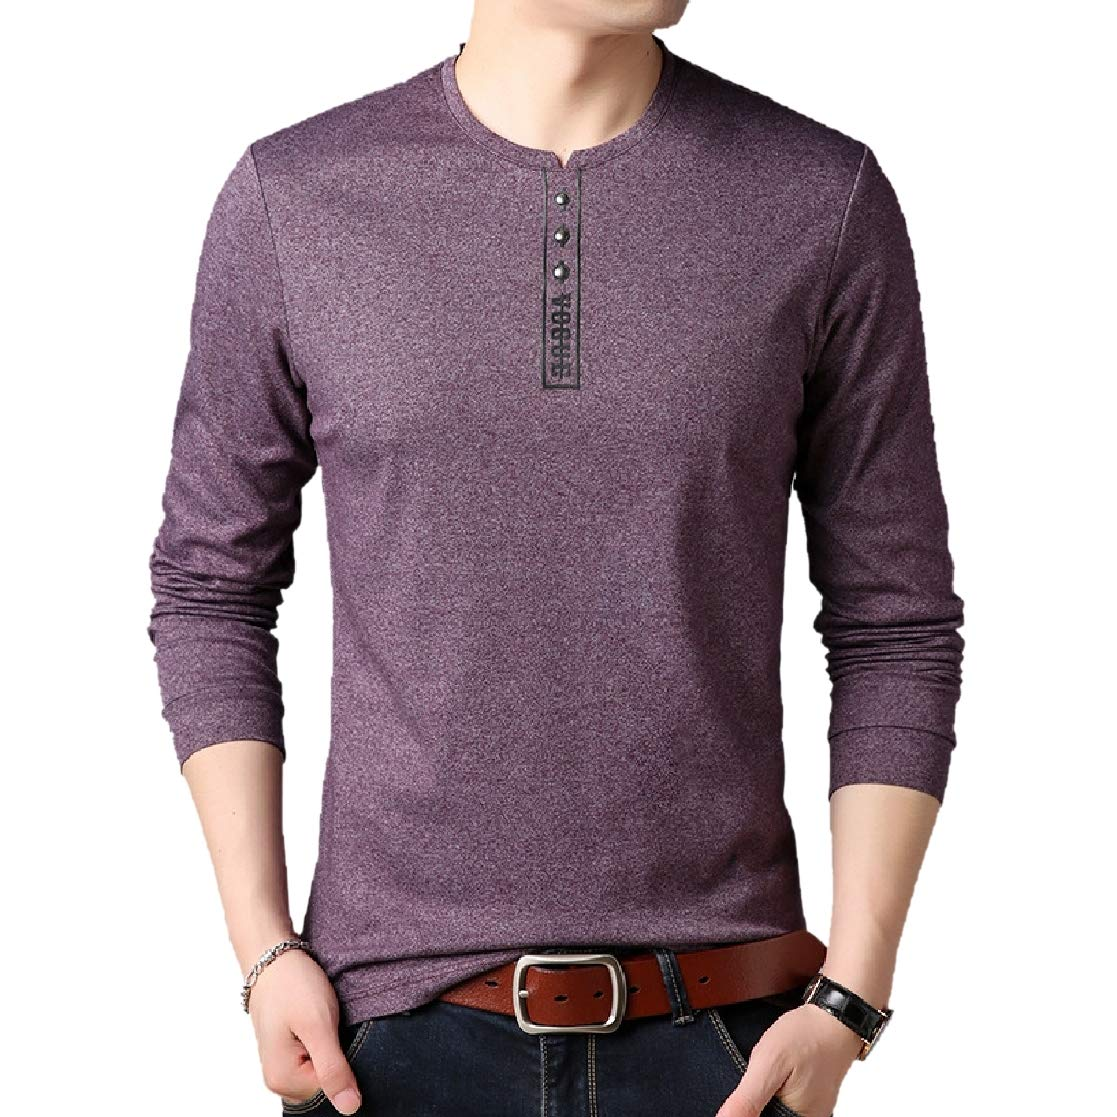 YUNY Men Basic Pure Color Plus Size Pullover Polo Top Tshirt Purple 2XL